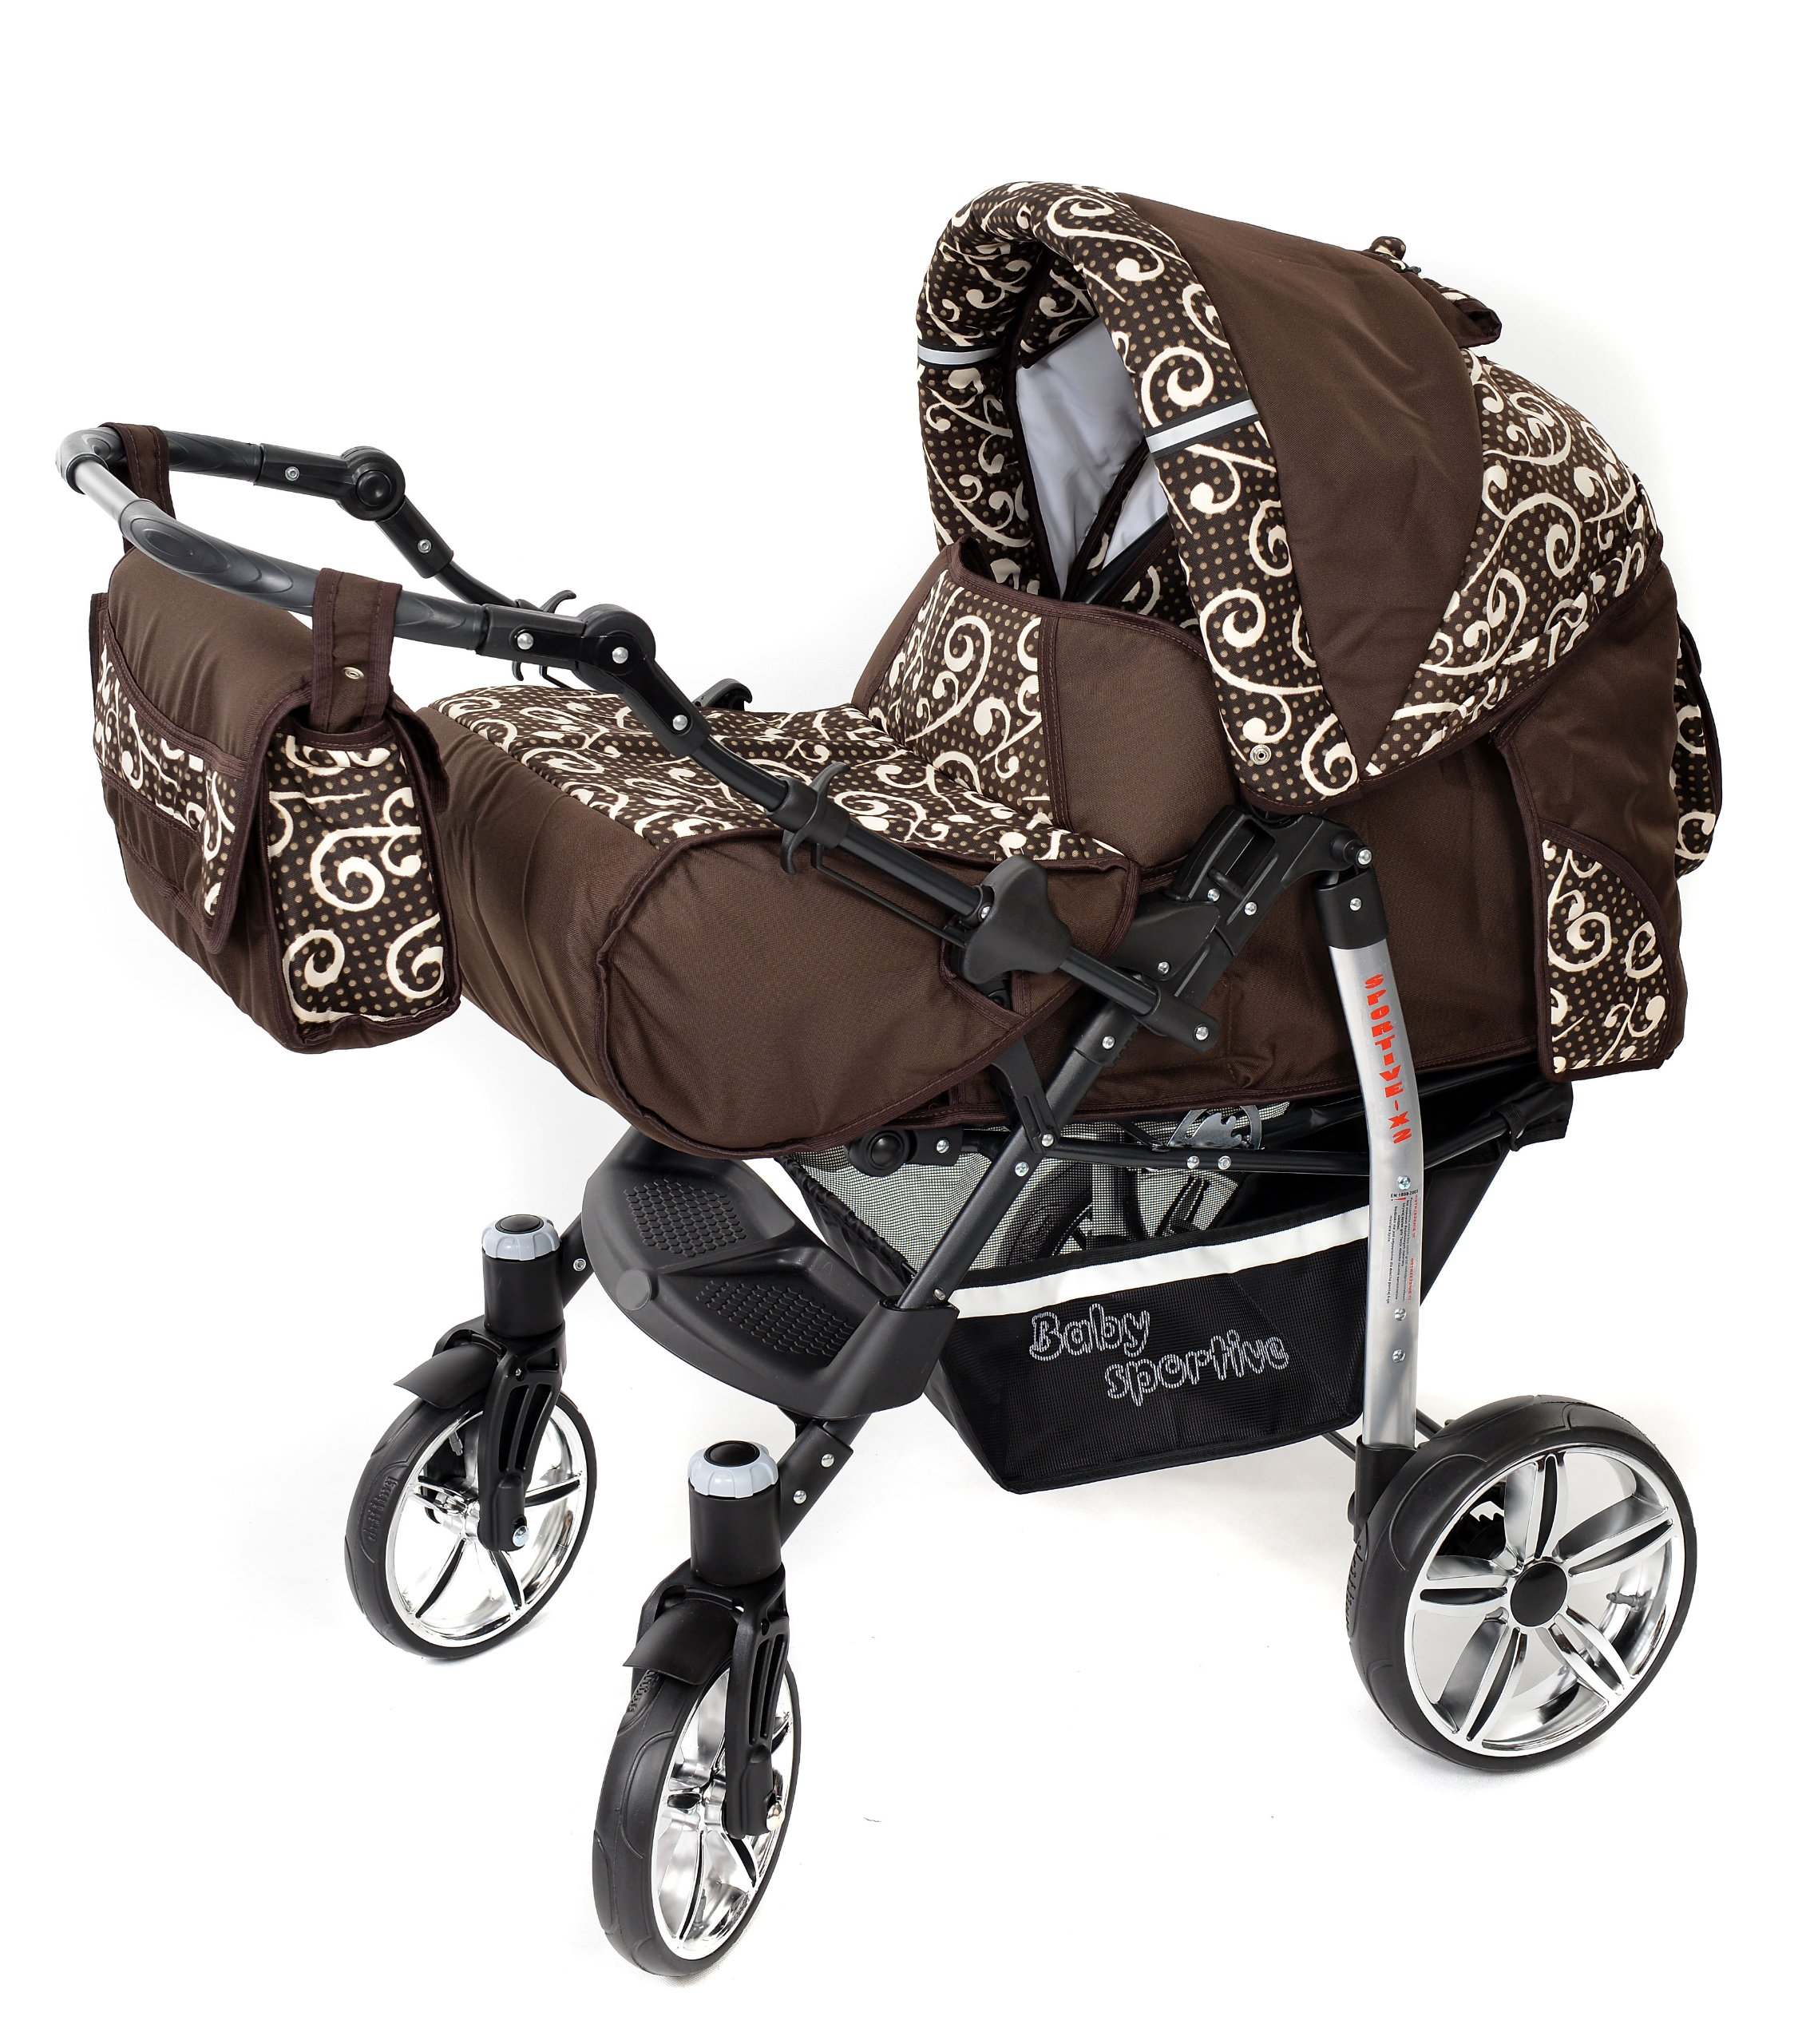 Sportive X2, 3-in-1 Travel System incl. Baby Pram with Swivel Wheels, Car Seat, Pushchair & Accessories (3-in-1 Travel System, Brown & Wawy Lines)  3 in 1 Travel System All in One Set - Pram, Car Carrier Seat and Sport Buggy + Accessories: carrier bag, rain protection, mosquito net, changing mat, removable bottle holder and removable tray for your child's bits and pieces Suitable from birth, Easy Quick Folding System; Large storage basket; Turnable handle bar that allows to face or rear the drive direction; Quick release rear wheels for easy cleaning after muddy walks Front lockable 360o swivel wheels for manoeuvrability , Small sized when folded, fits into many small car trunks, Carry-cot with a removable hood, Reflective elements for better visibility 2